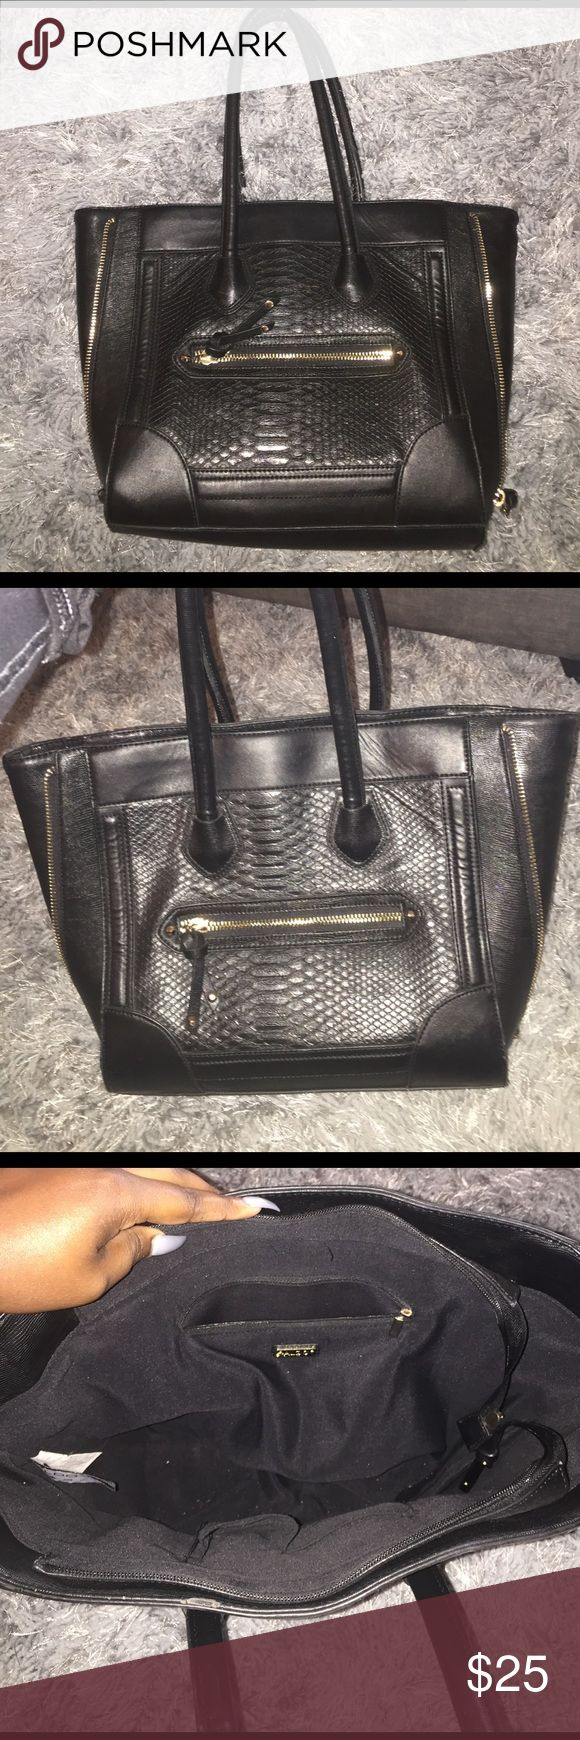 Black Aldo Tote Black Aldo tote. Minimal wear and tear. Front and inside zipper. Medium sized. Open to negotiating. Aldo Bags Totes